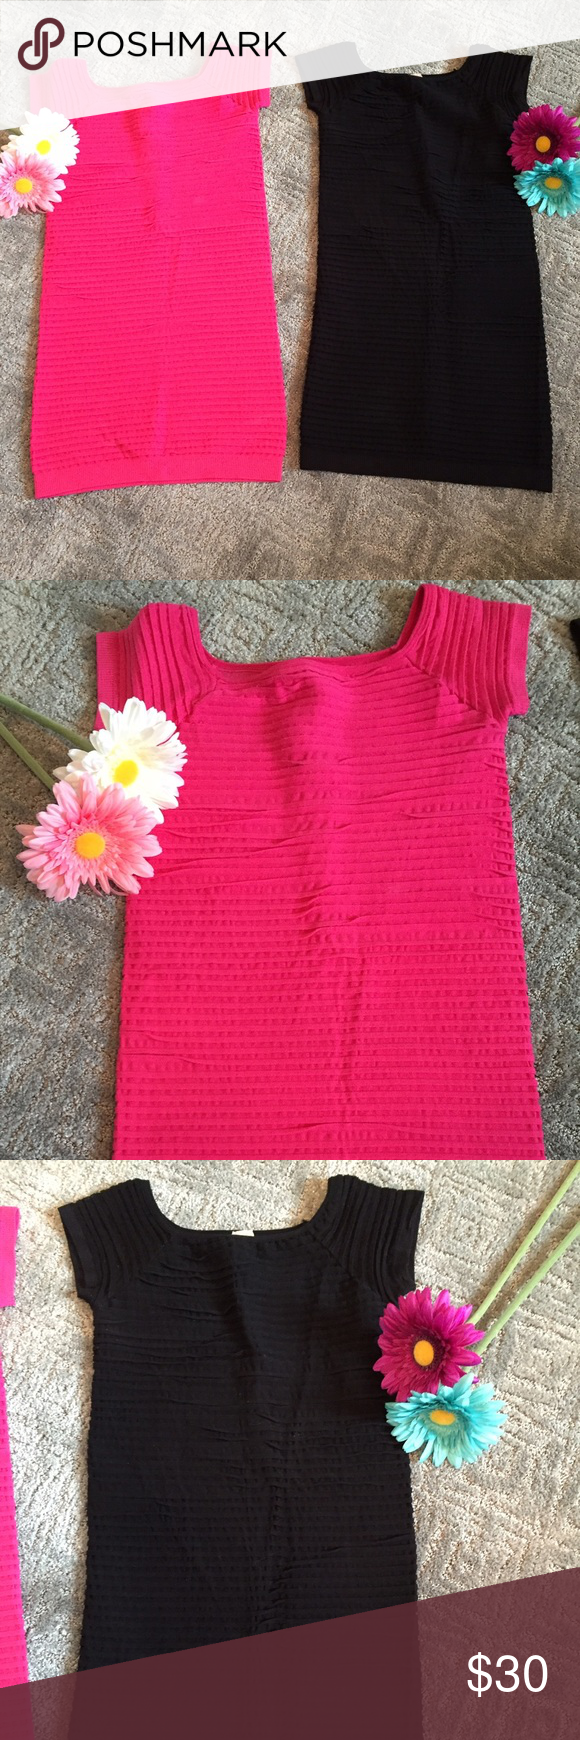 Pink dress in store  Bundle of two bodycon dresses   Hot pink dresses Petite